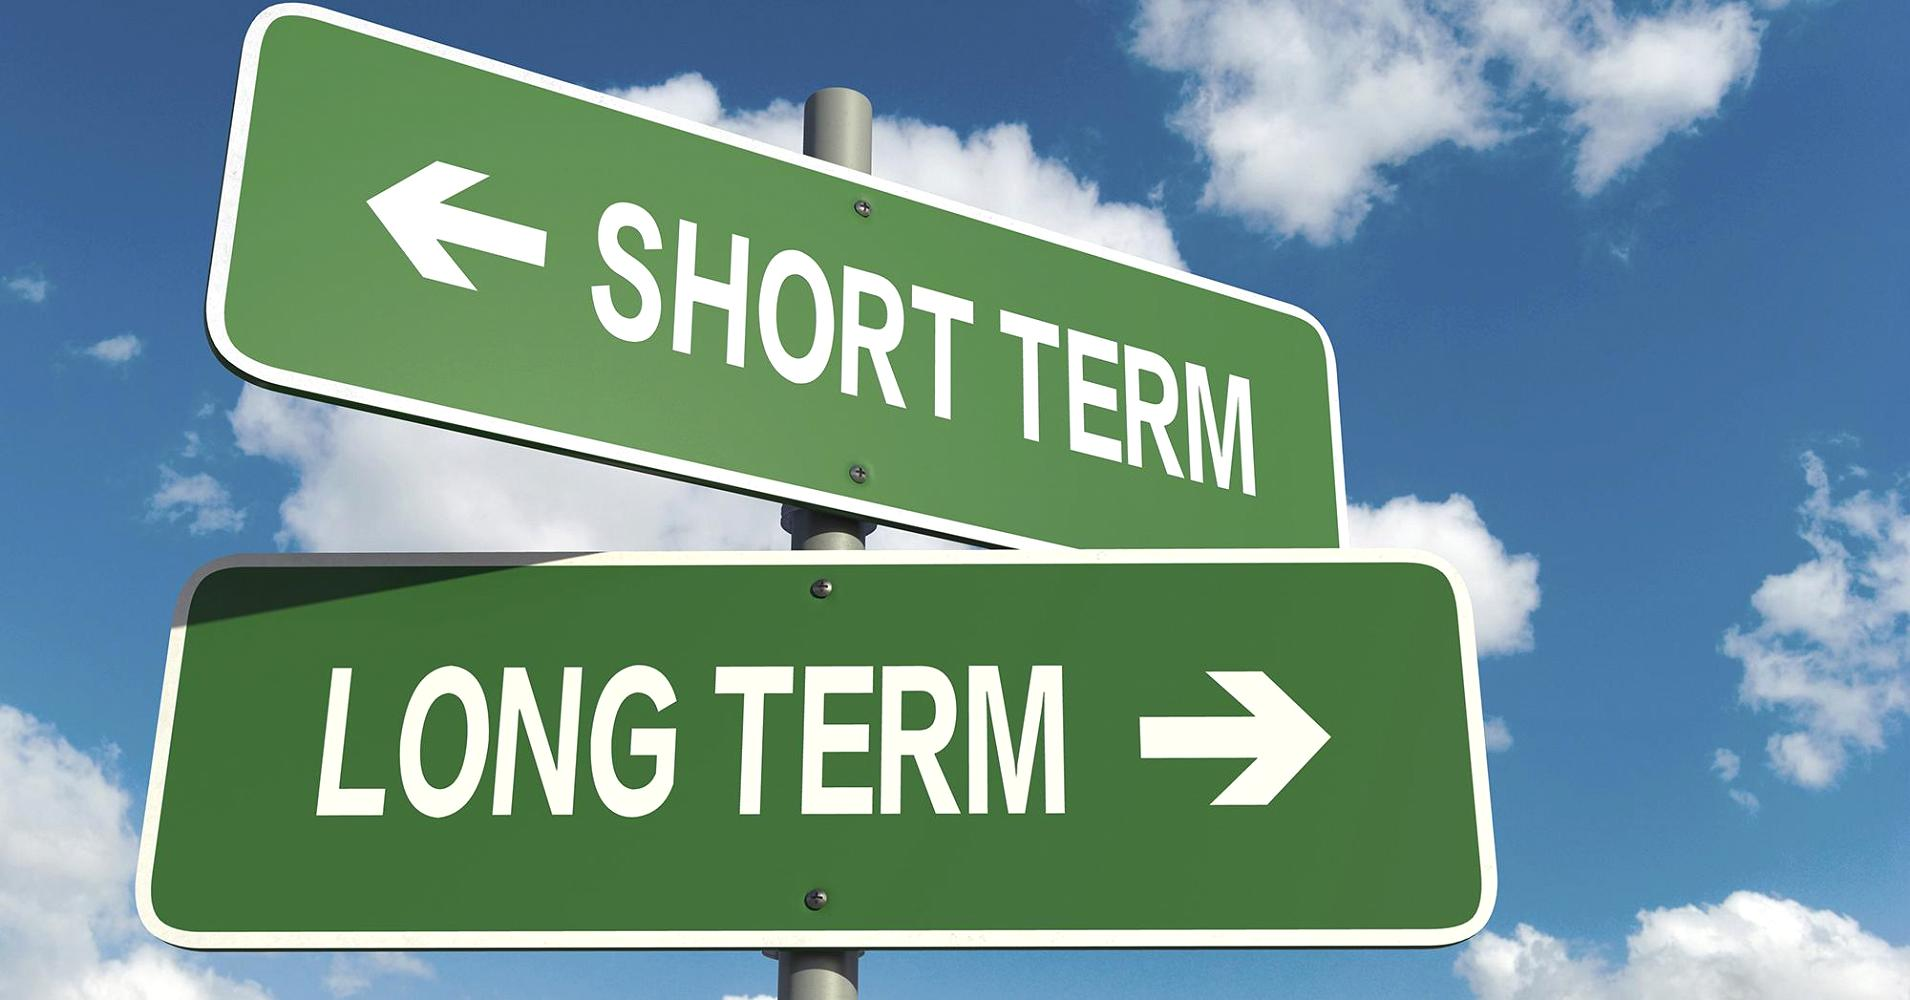 Short Term and Long Term Loans